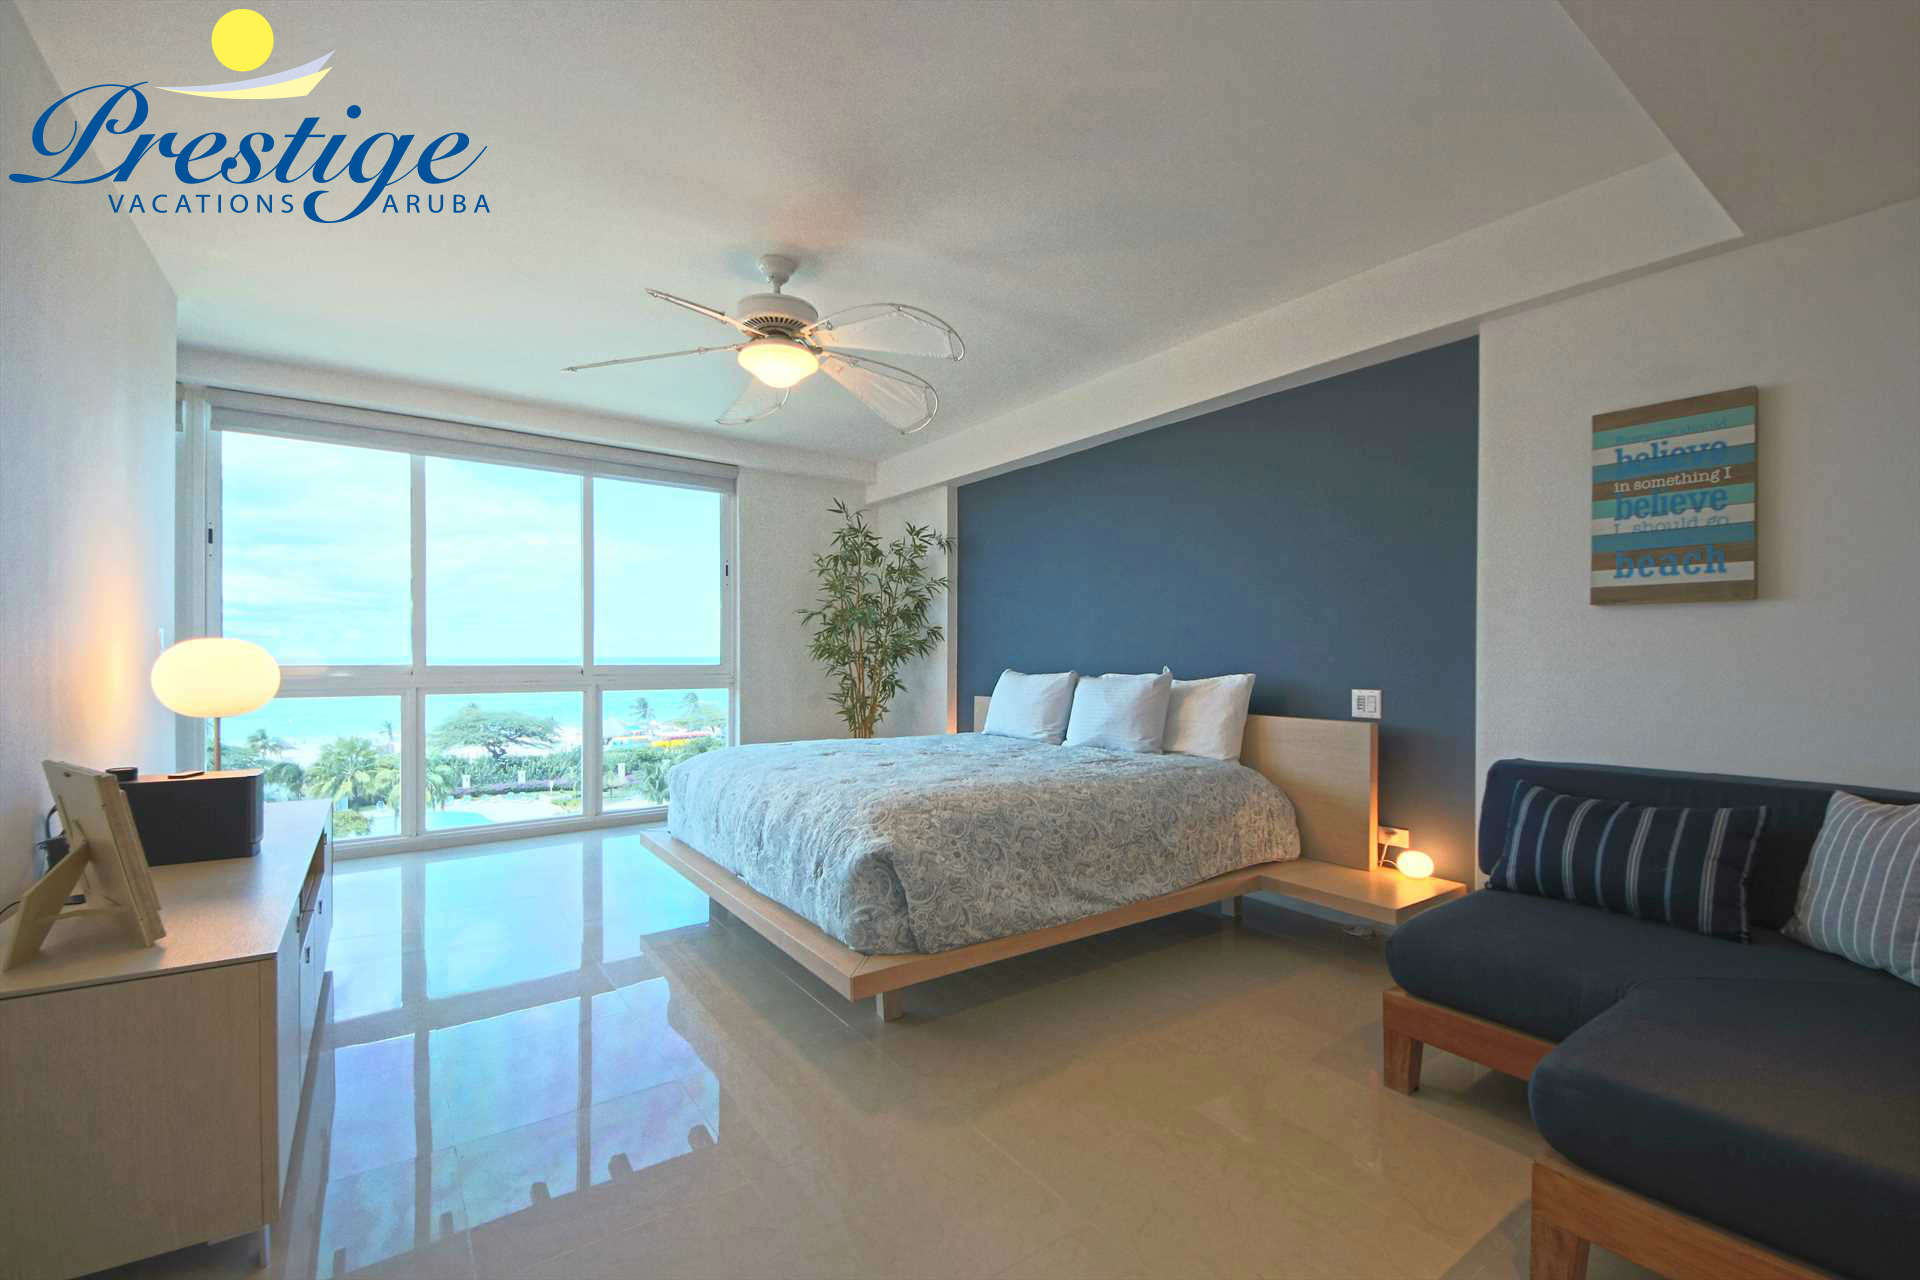 The master bedroom with a large glass window to indulge the ocean views from every corner